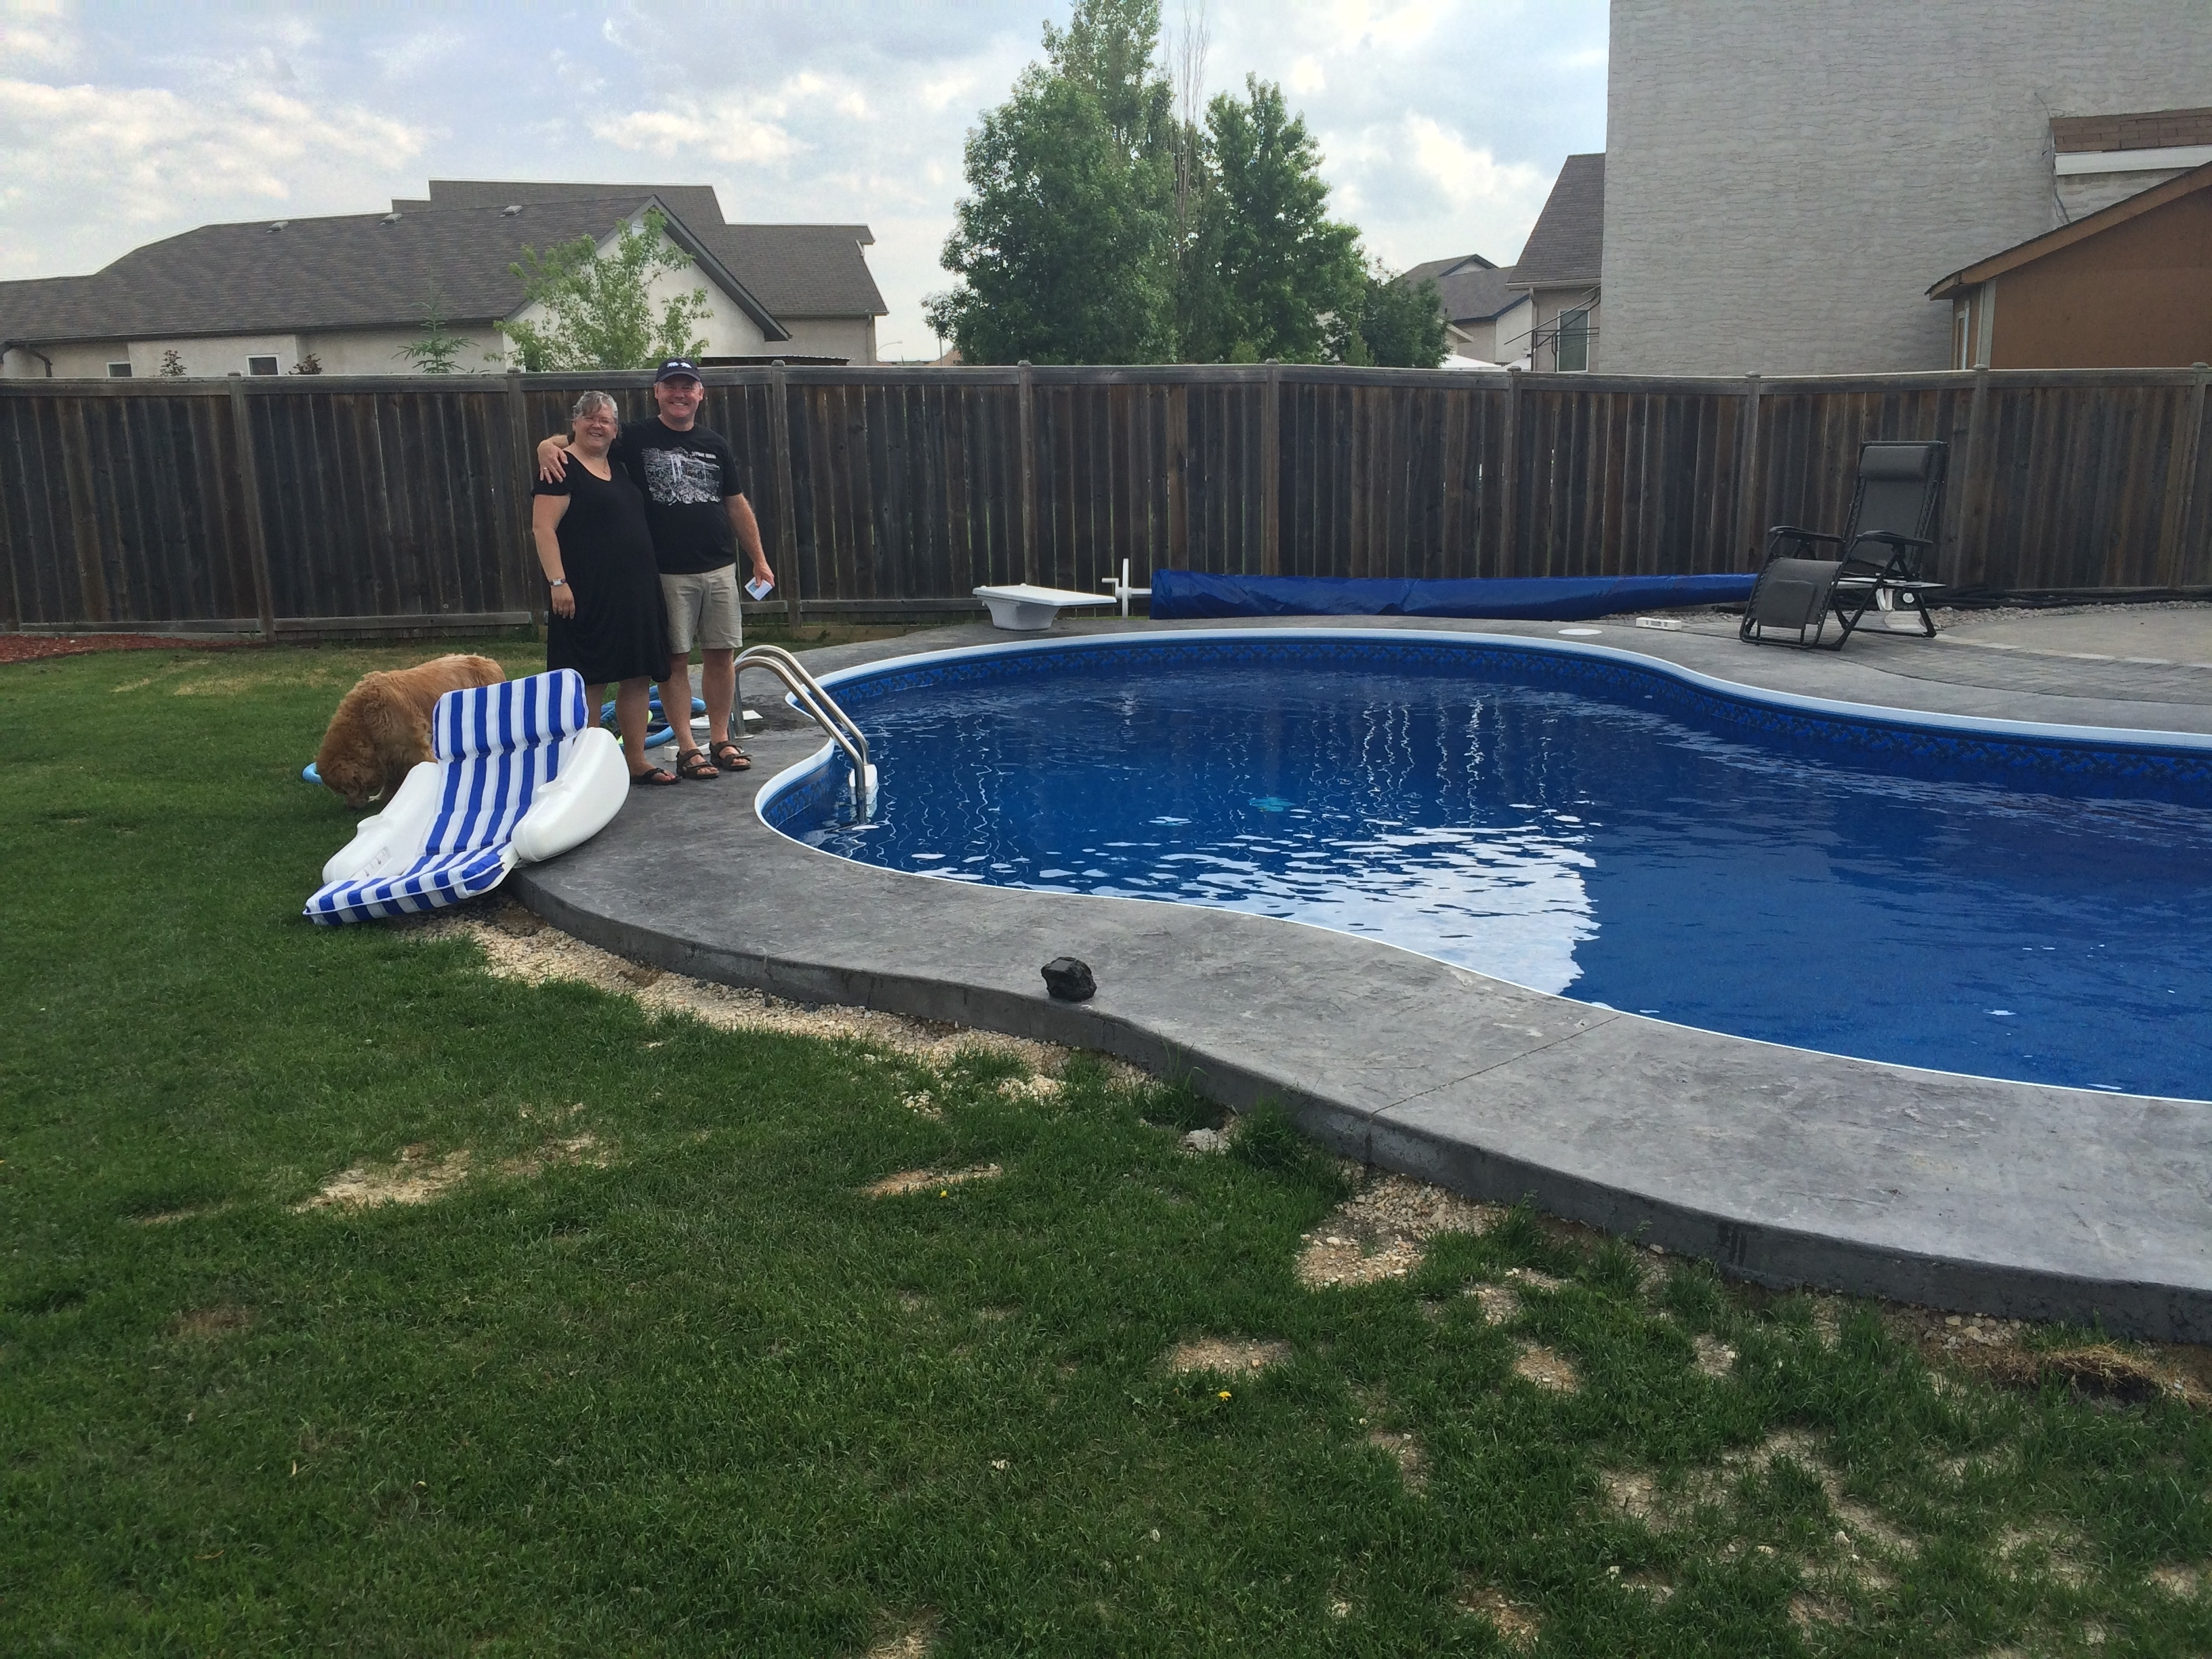 Swimming Pools For Current Krevco Patio Umbrellas (View 15 of 20)